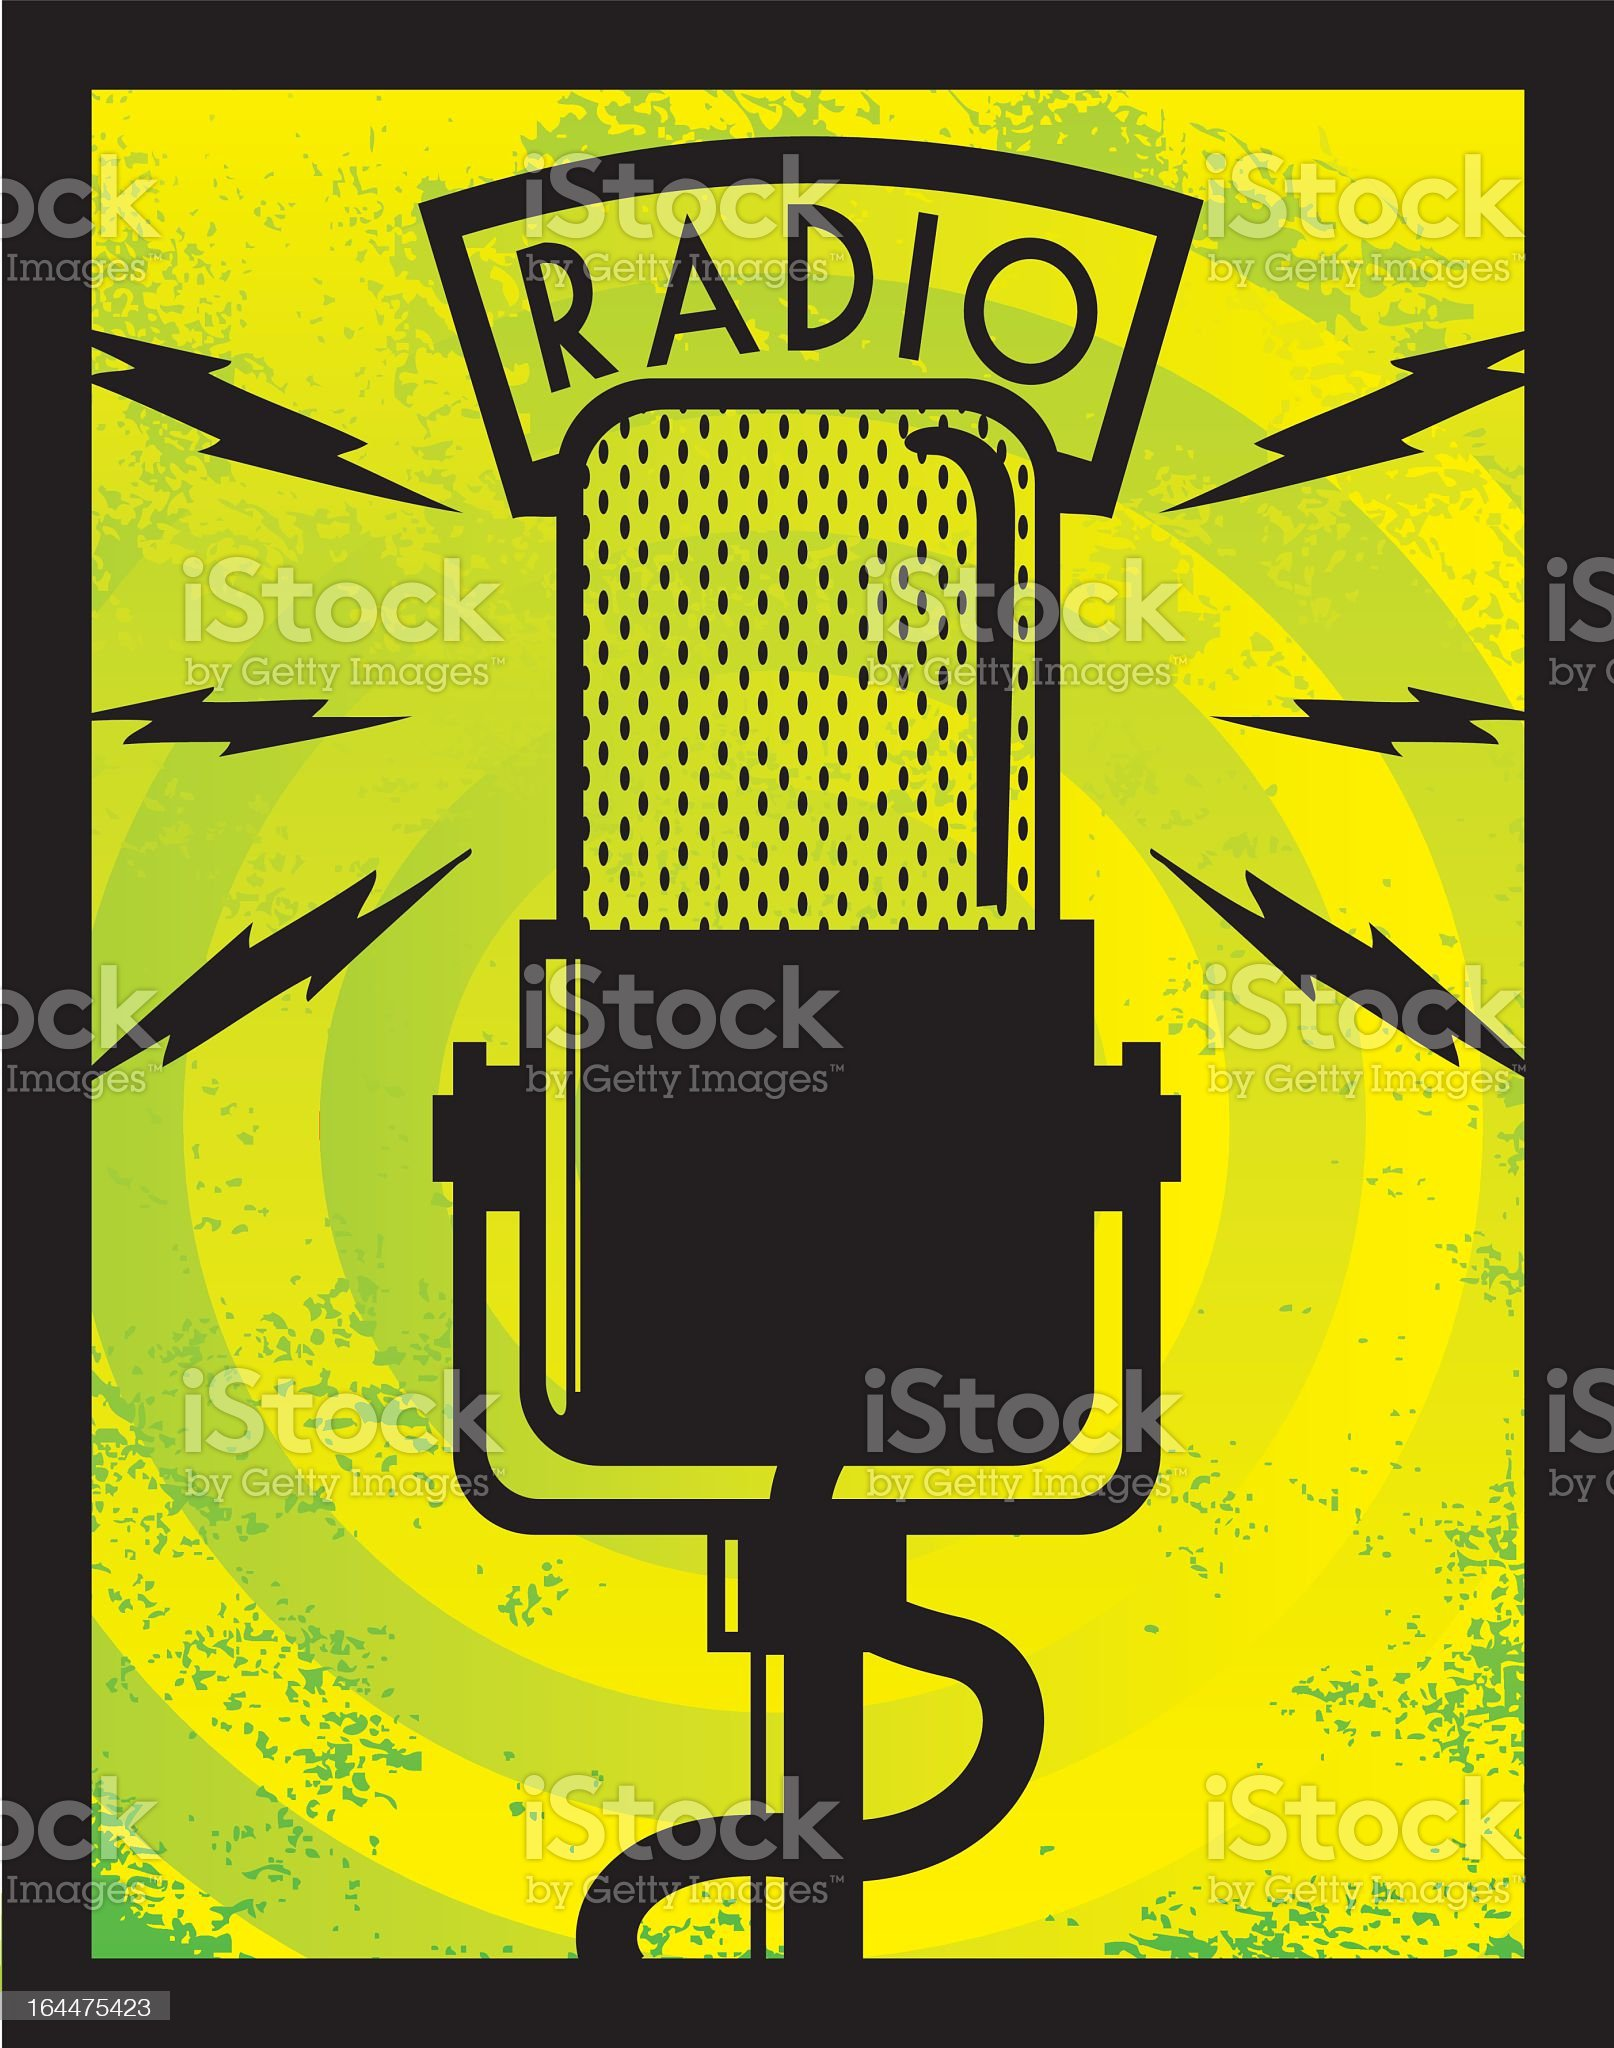 Illustration of a radio microphone on a yellow background royalty-free stock vector art